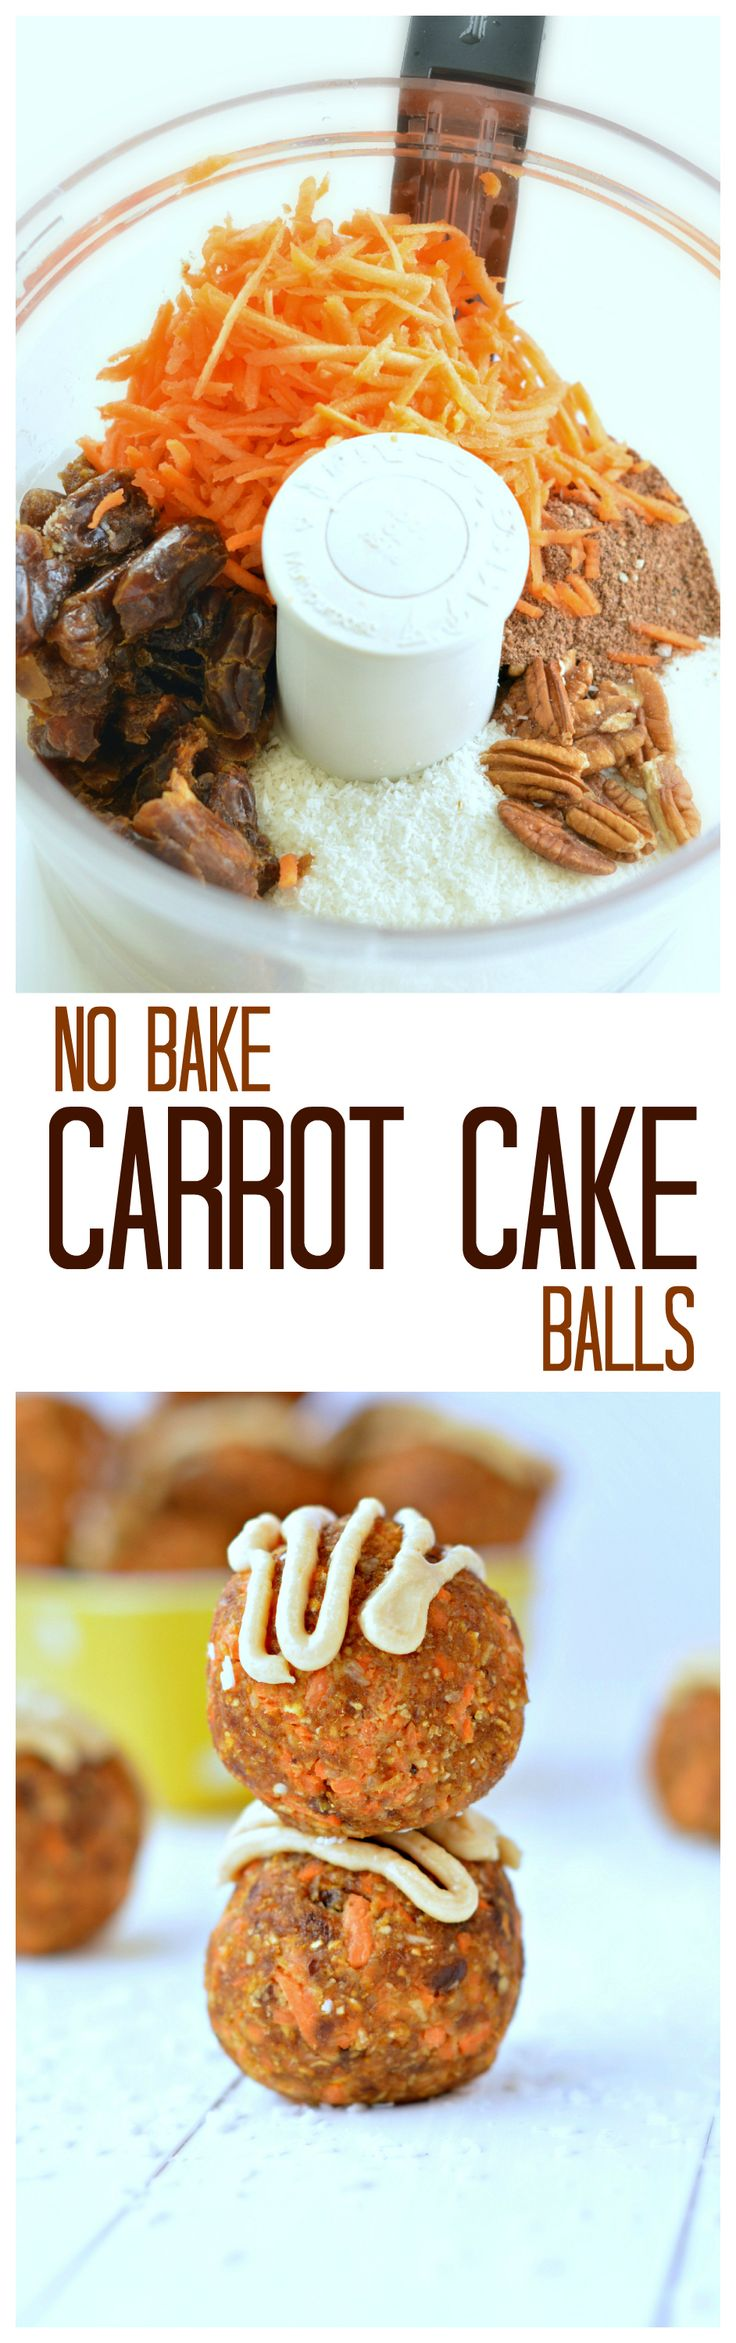 No Bake Carrot Cake Balls